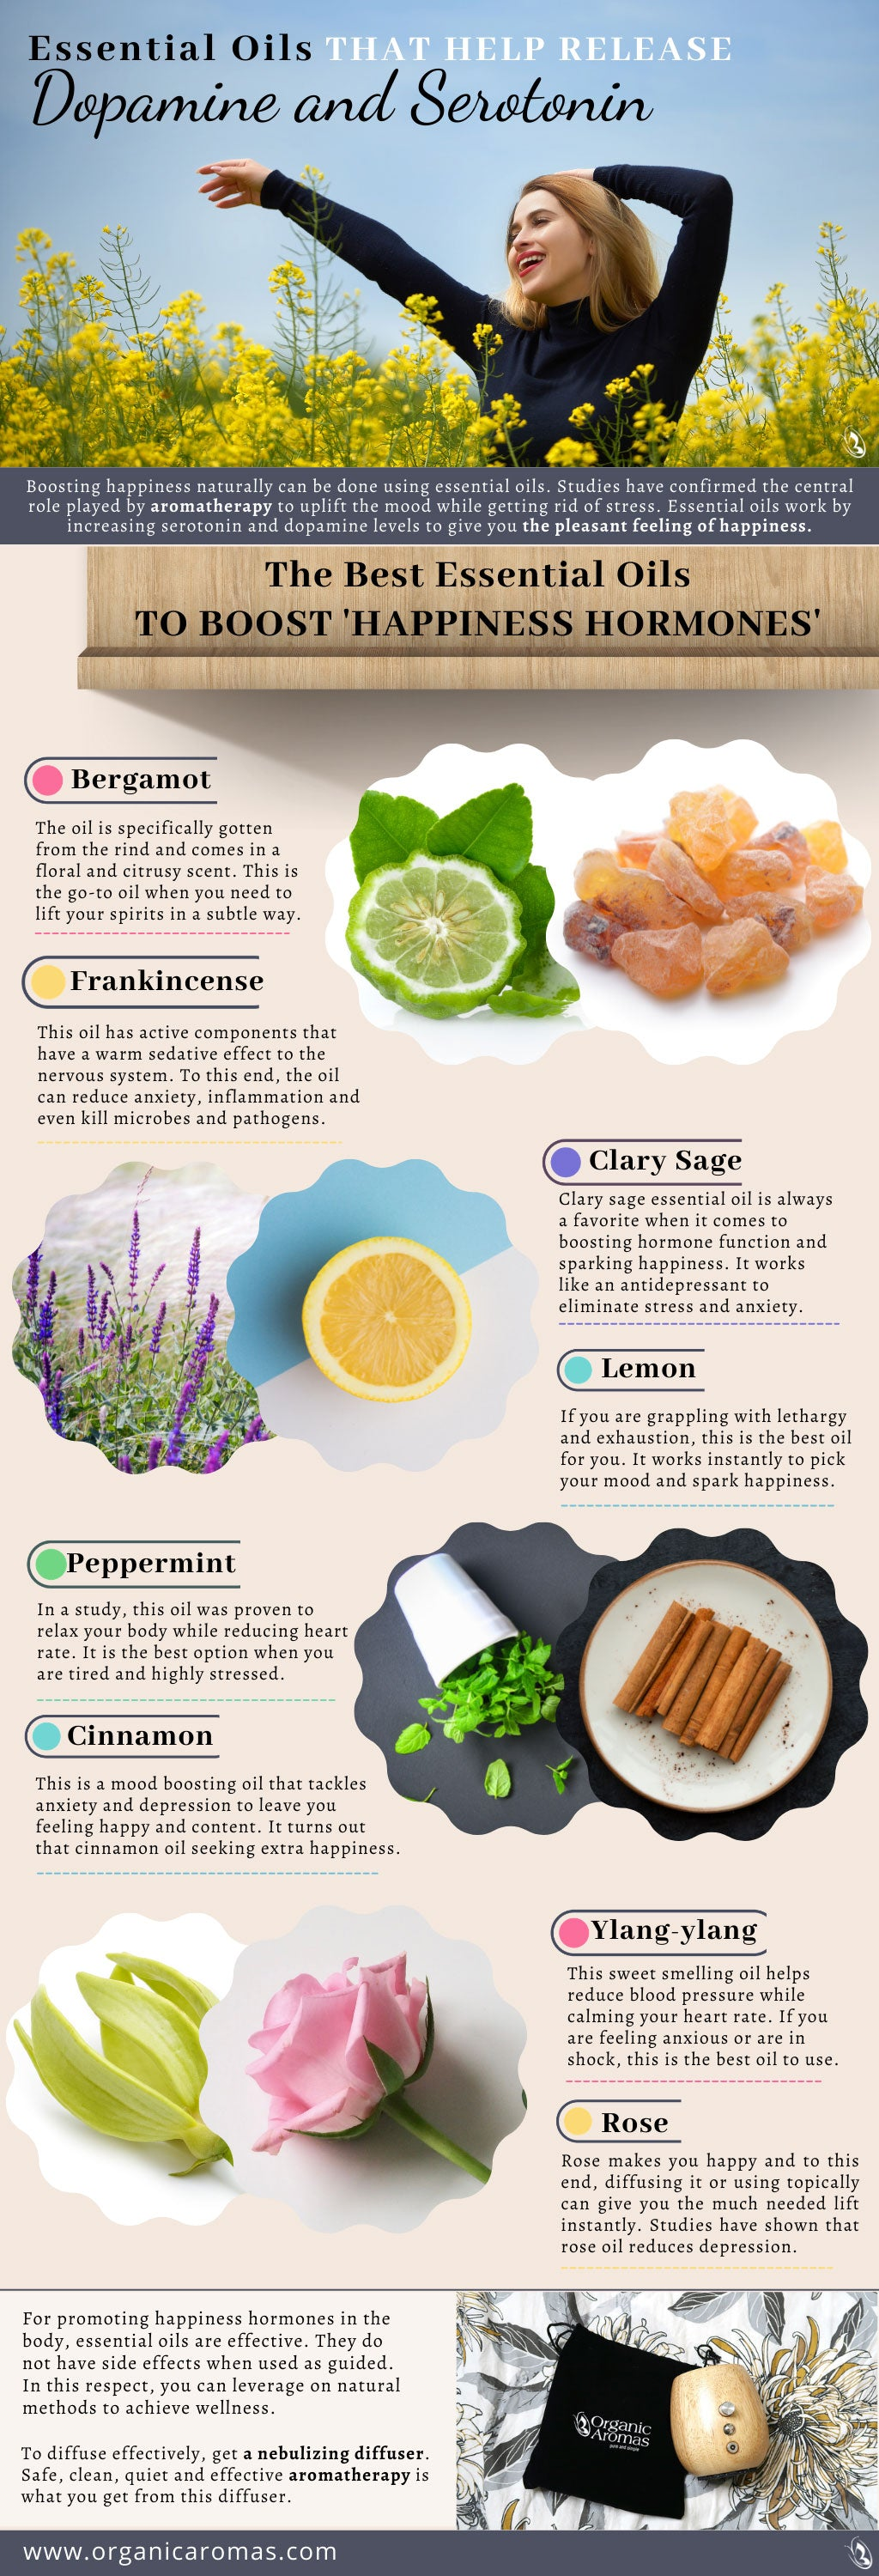 Essential Oils That Help Release Dopamine and Serotonin